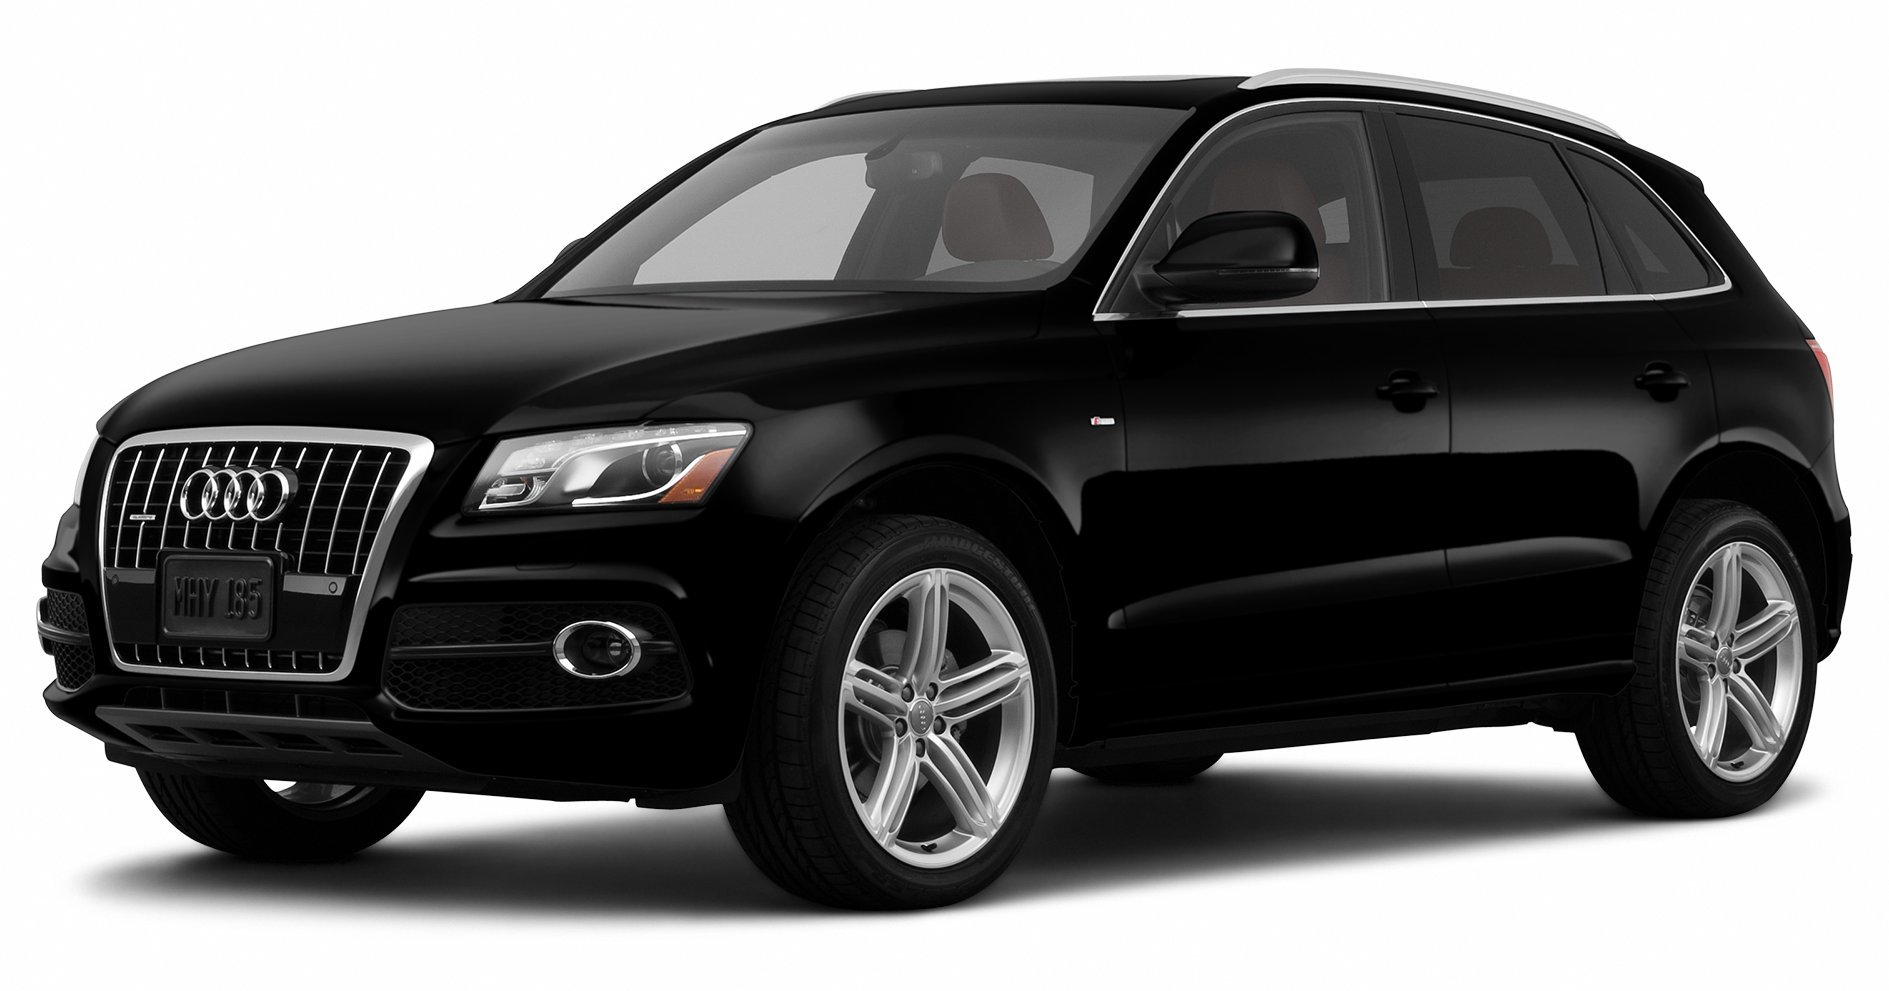 2012 audi q5 reviews images and specs vehicles. Black Bedroom Furniture Sets. Home Design Ideas